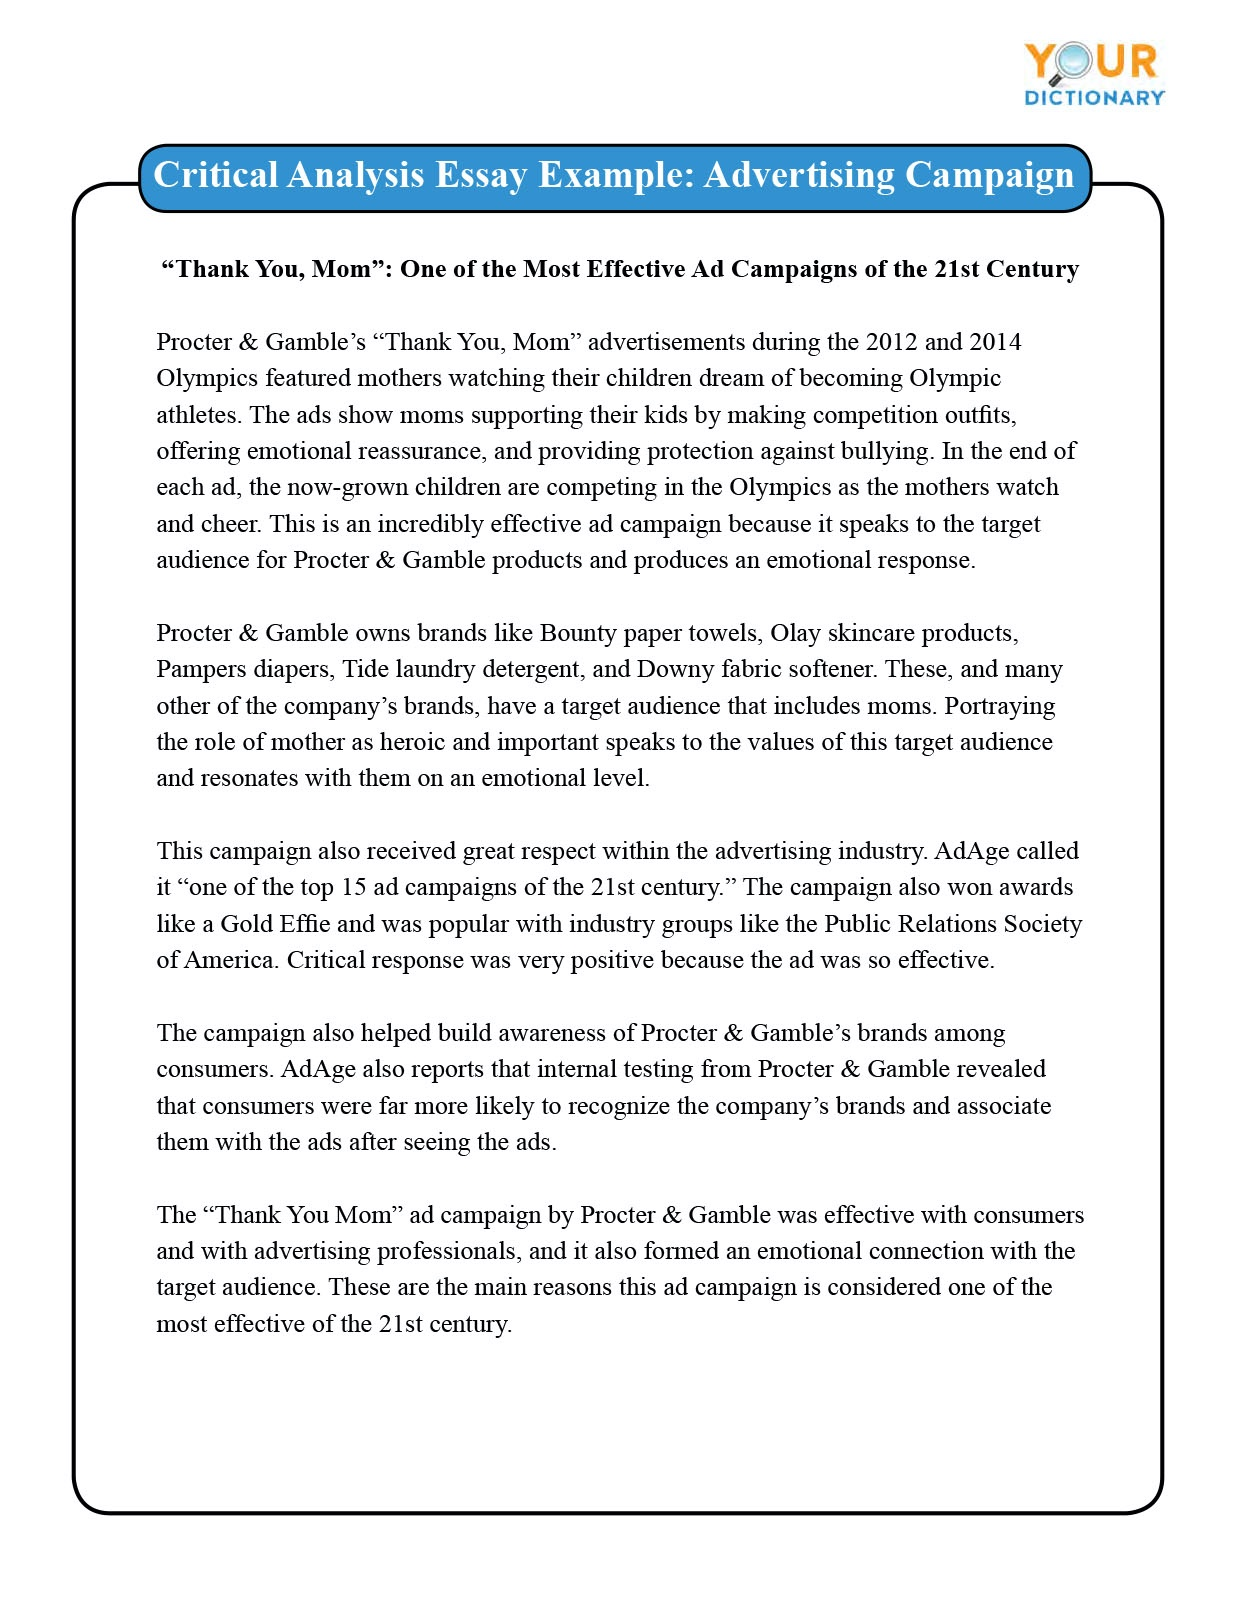 Example of Critical Analysis Advertising Essay